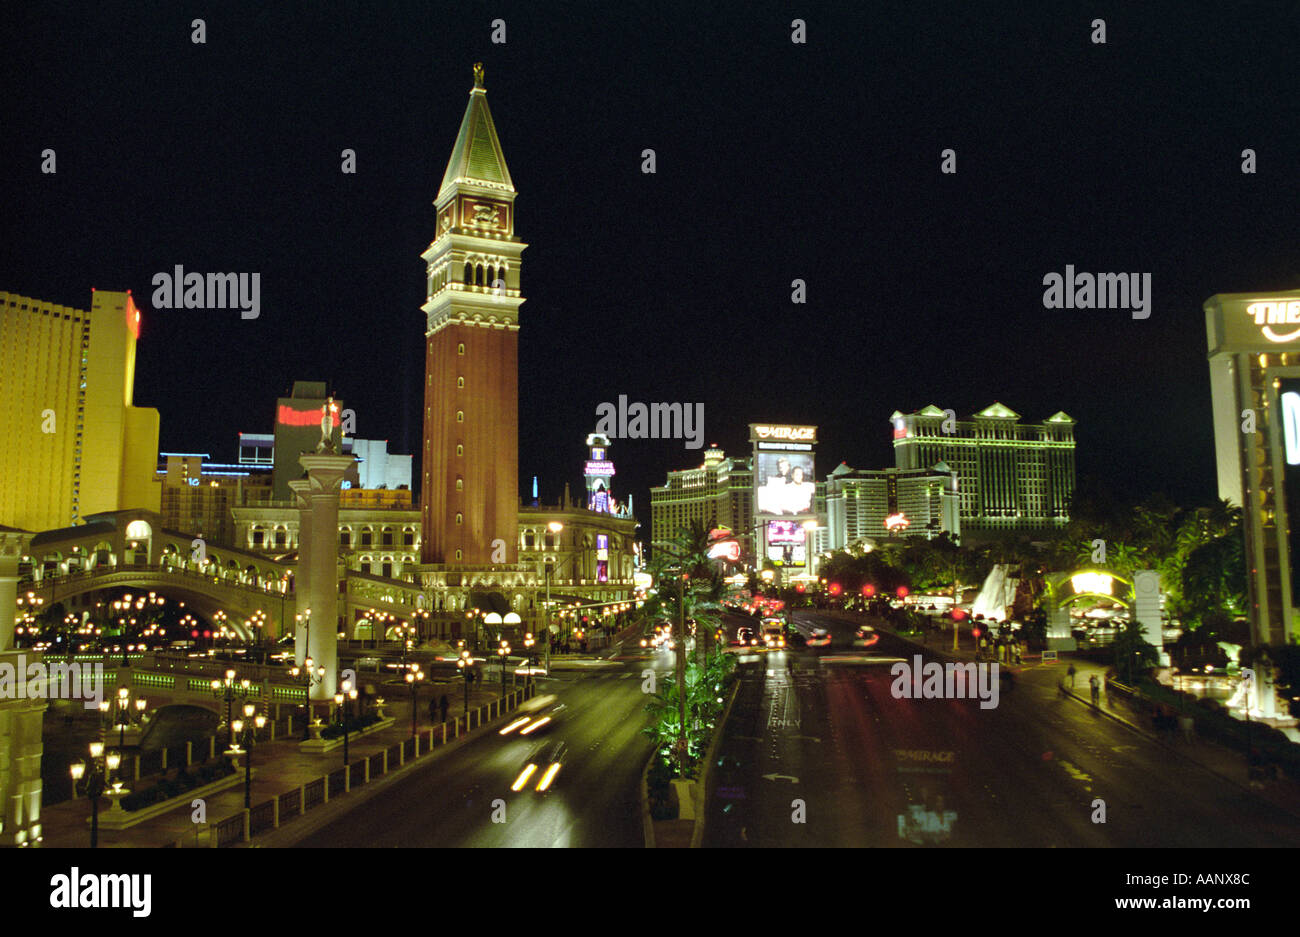 The Vegas Strip at Night outside the Venetian resort hotel and casino Las Vegas Nevada USA - Stock Image